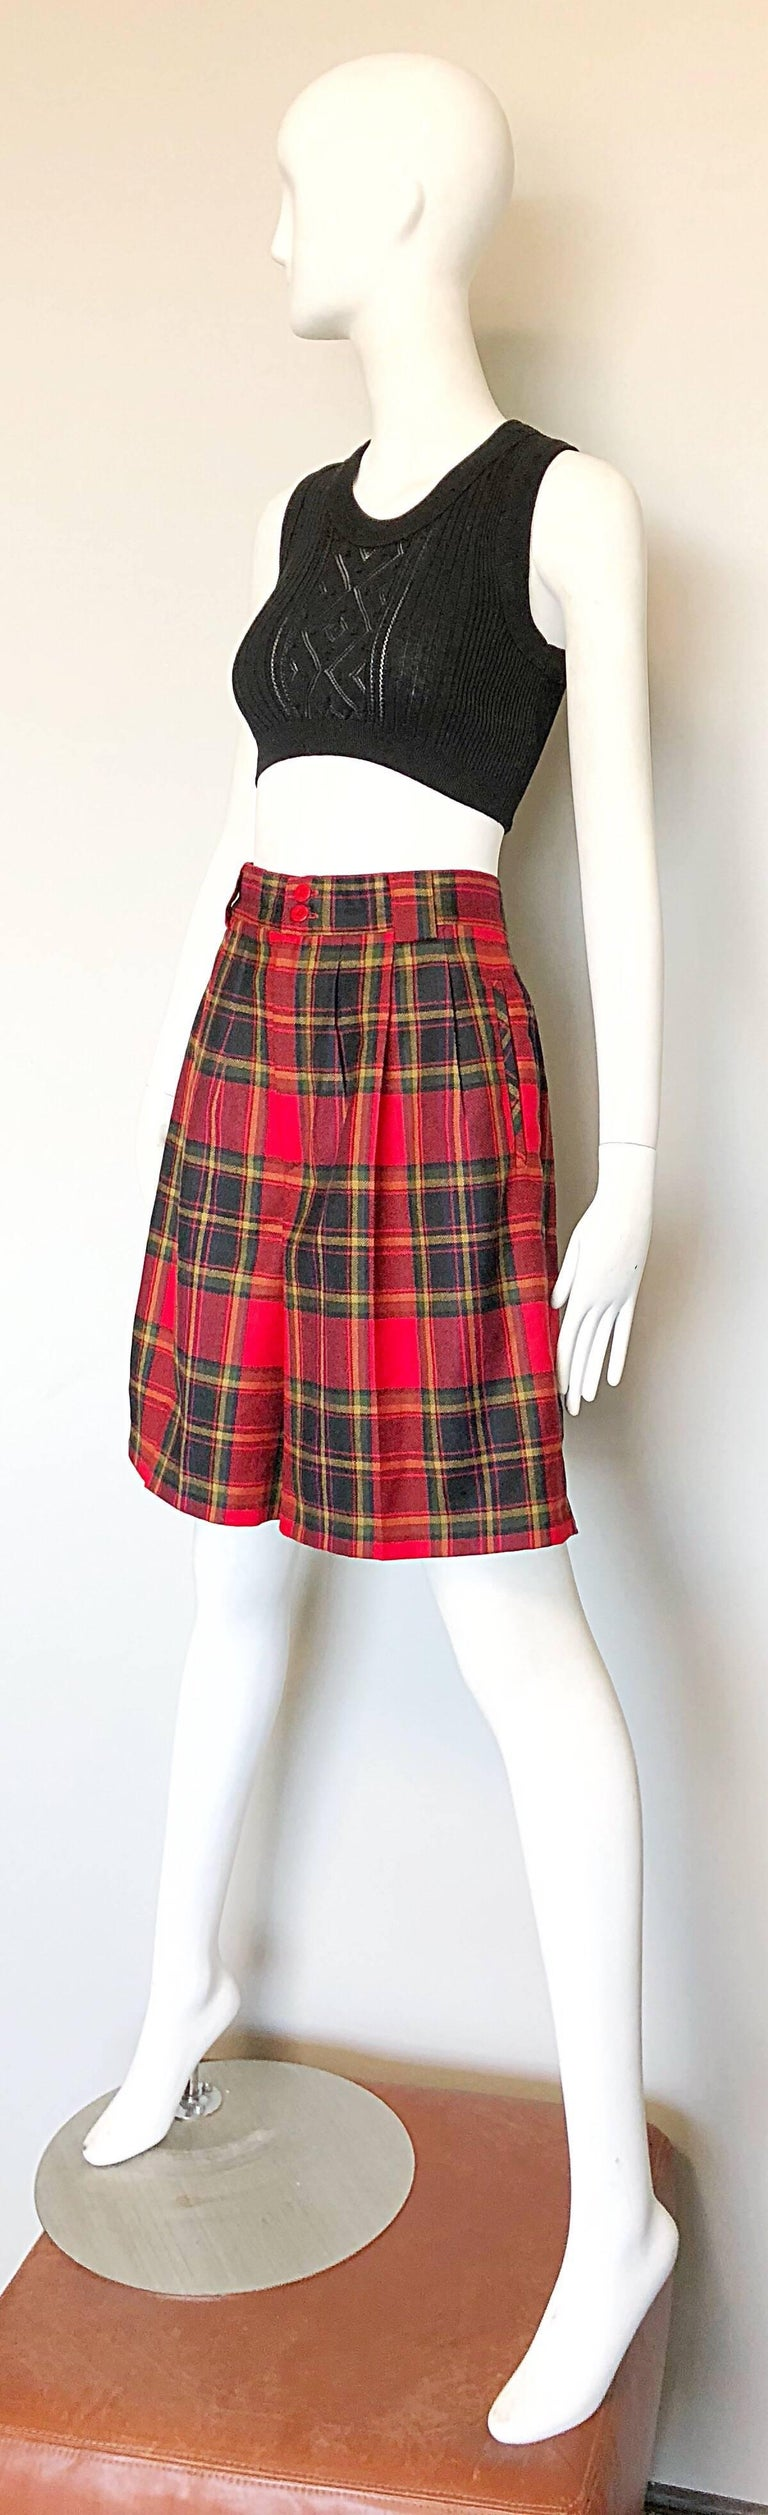 Giorgio Sant Angelo 1980s Red Tartan Plaid Virgin Wool Vintage Culottes Shorts  In Excellent Condition For Sale In Chicago, IL